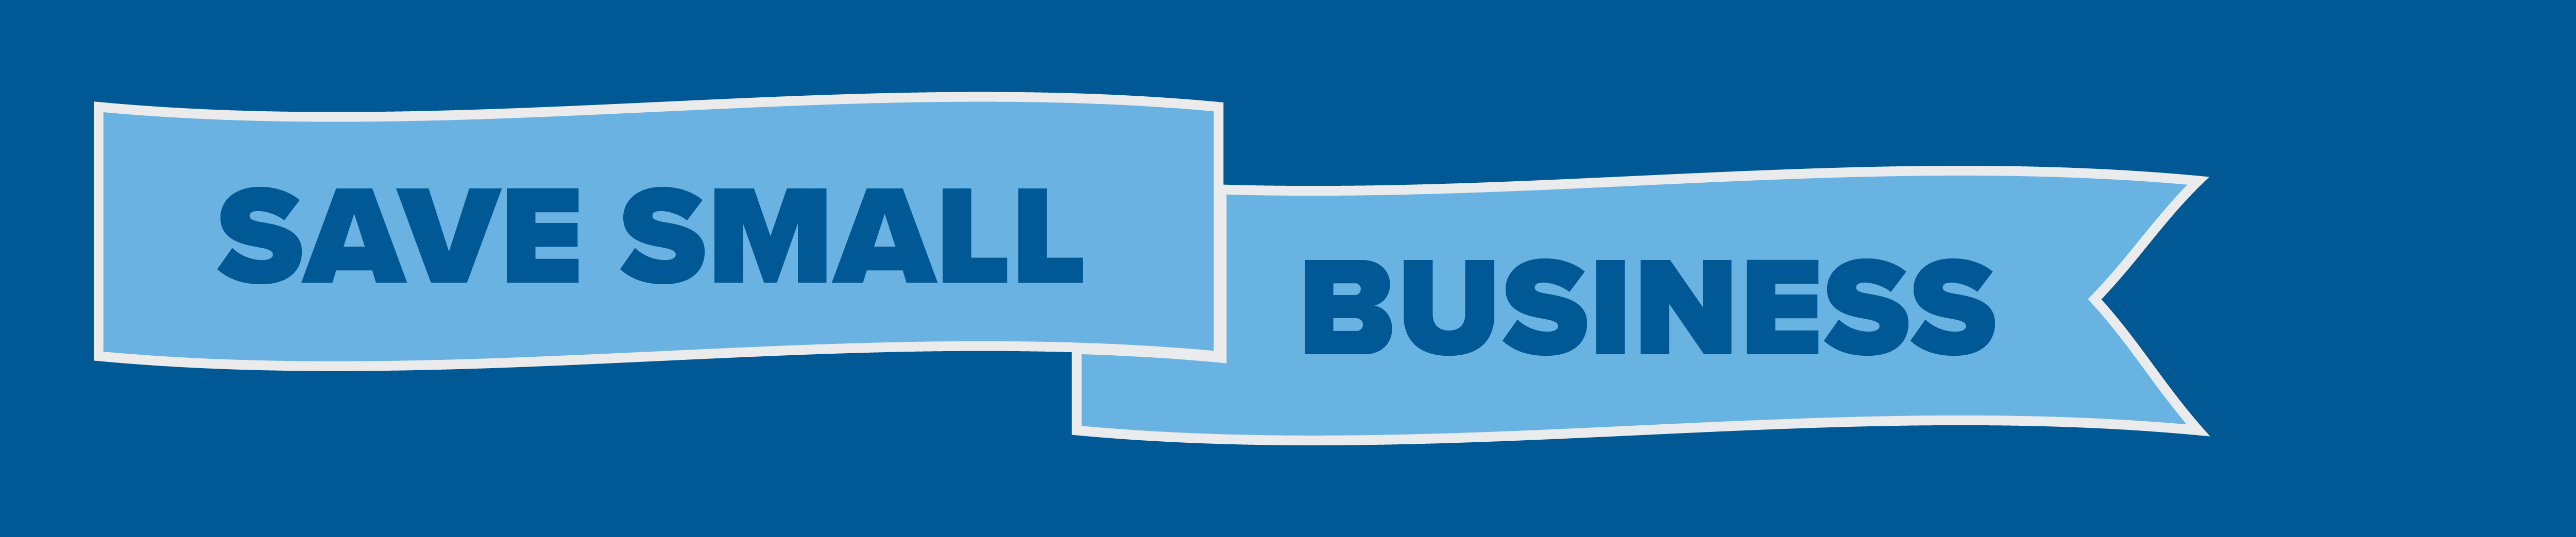 Save Small Business Arc Header 2.0